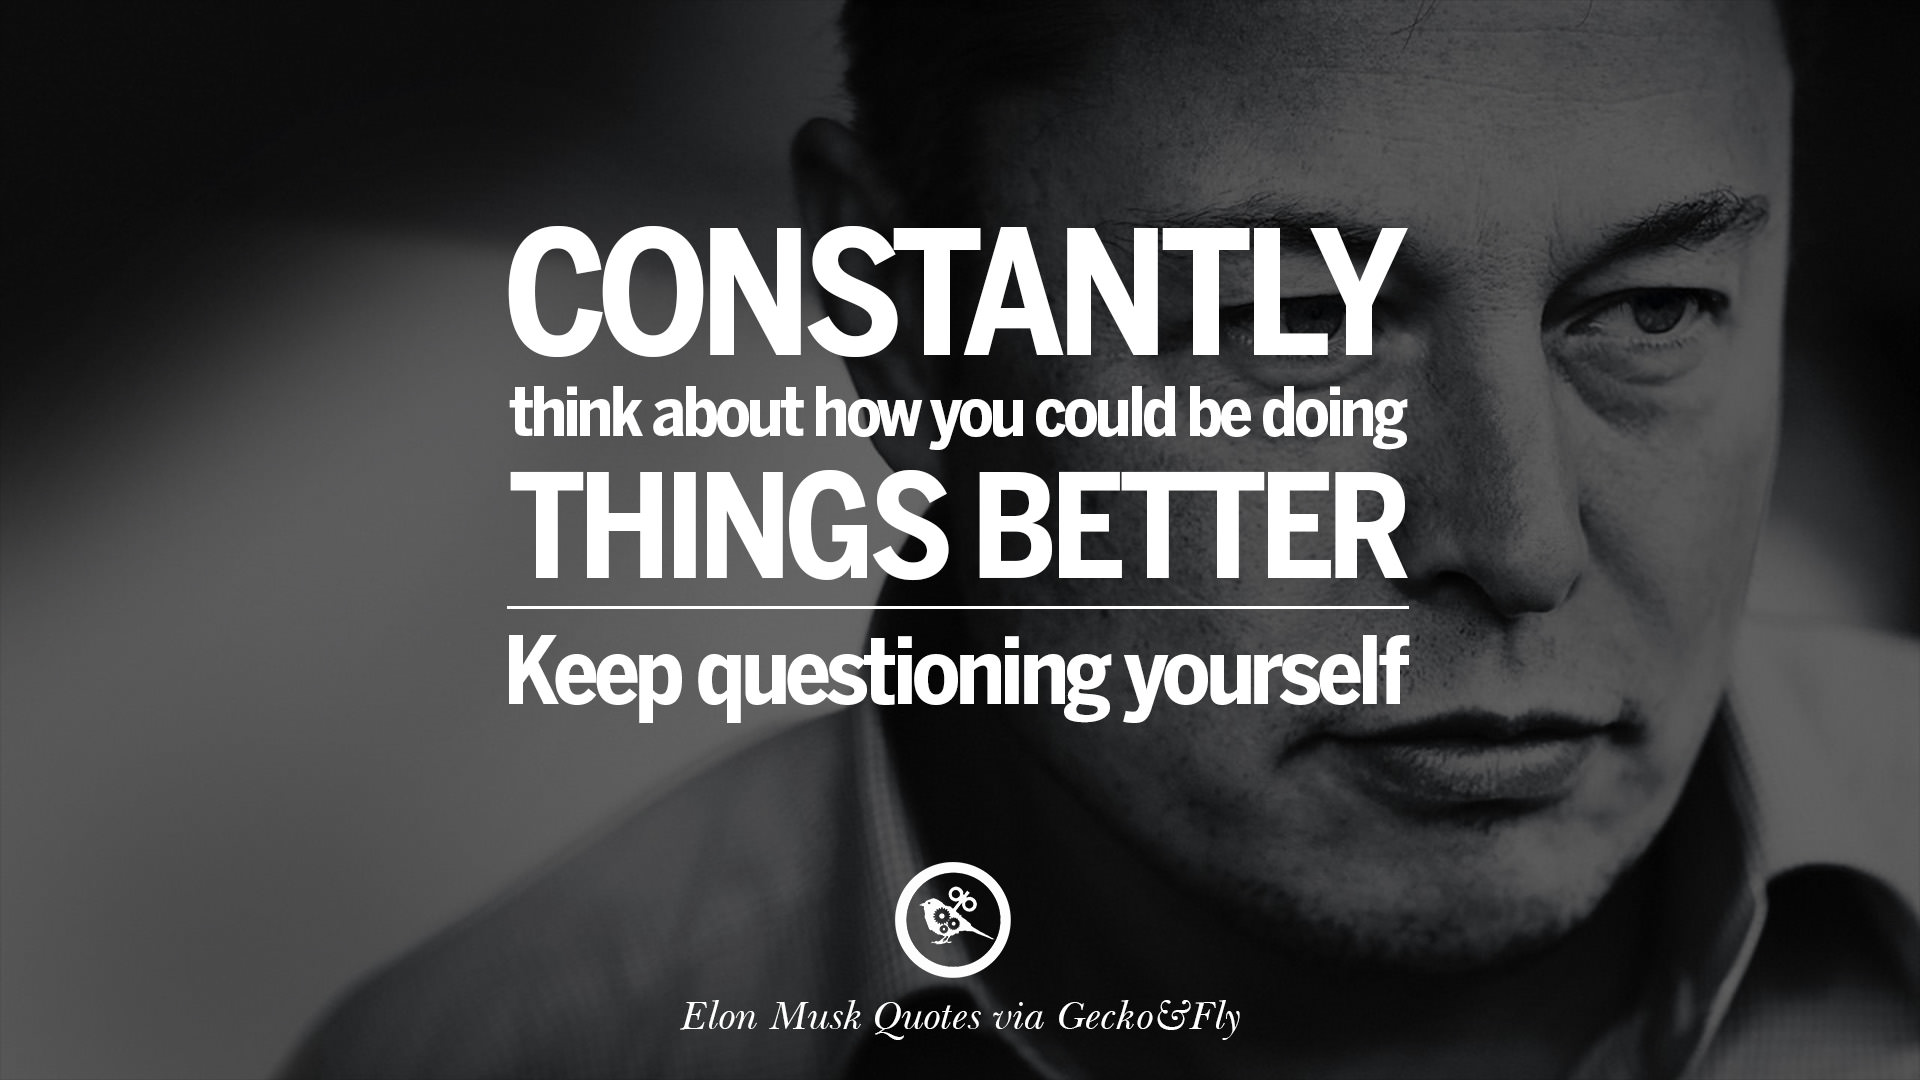 Phone Wallpapers Motivational Quotes 20 Elon Musk Quotes On Business Risk And The Future